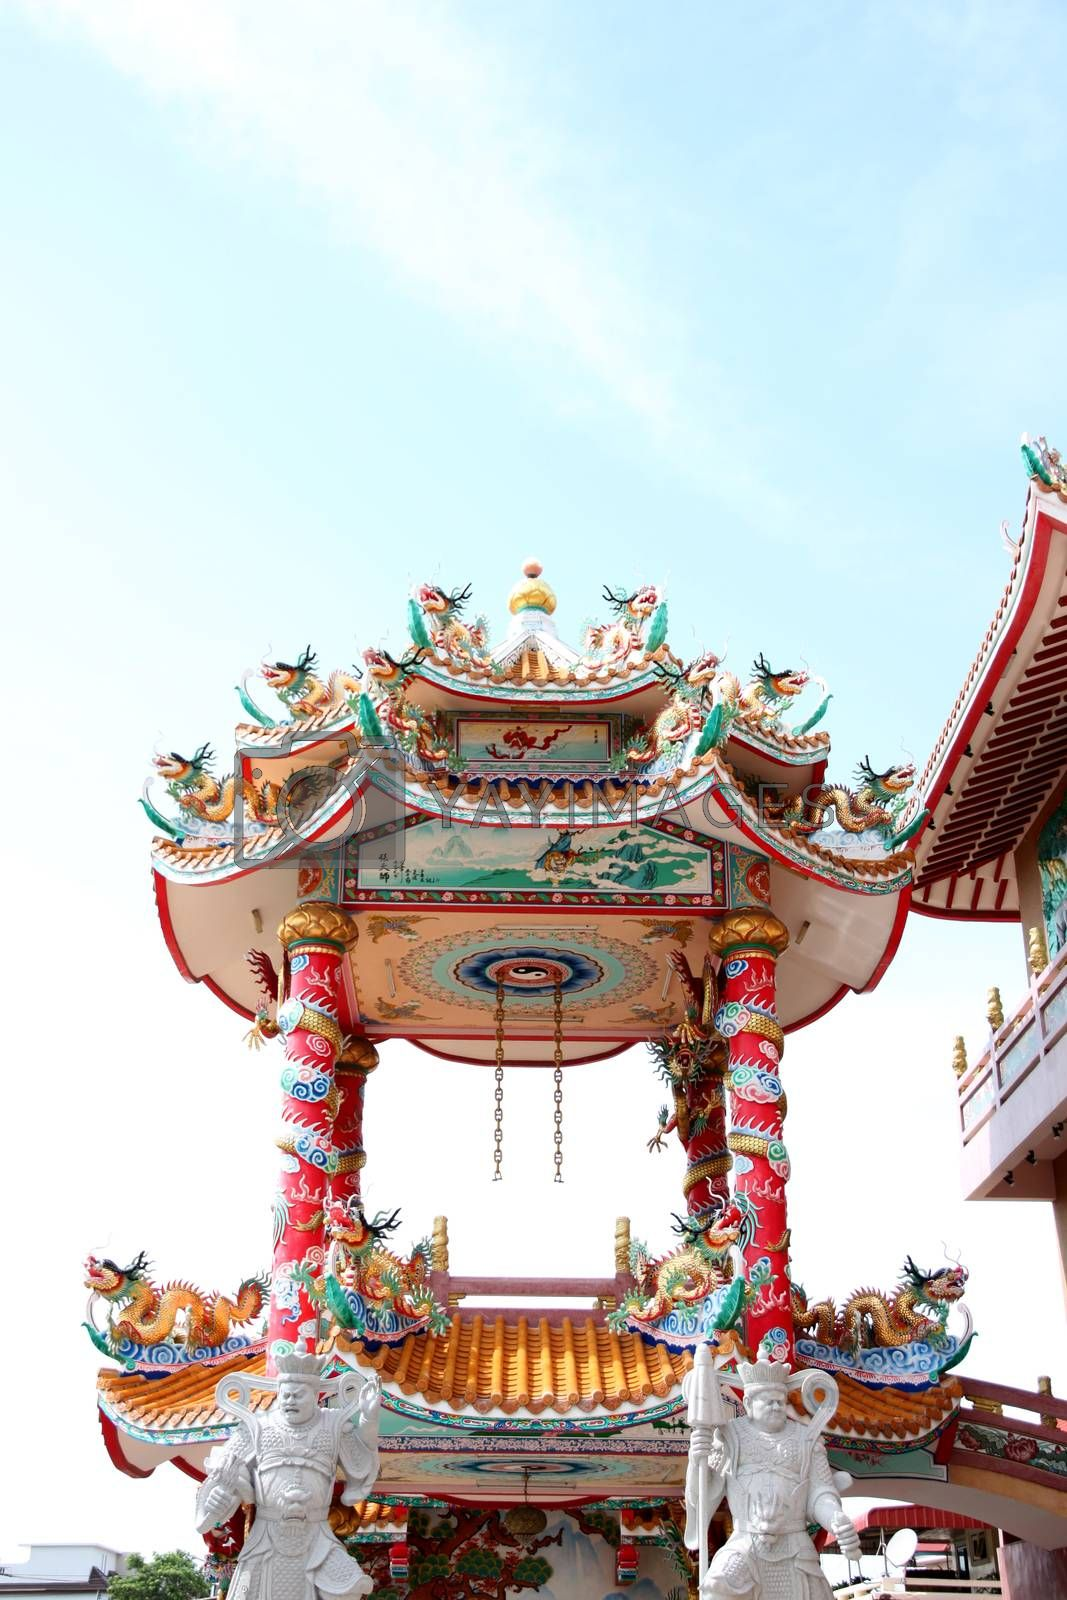 Pavilion of art in the Chinese temple. by PiyaPhoto